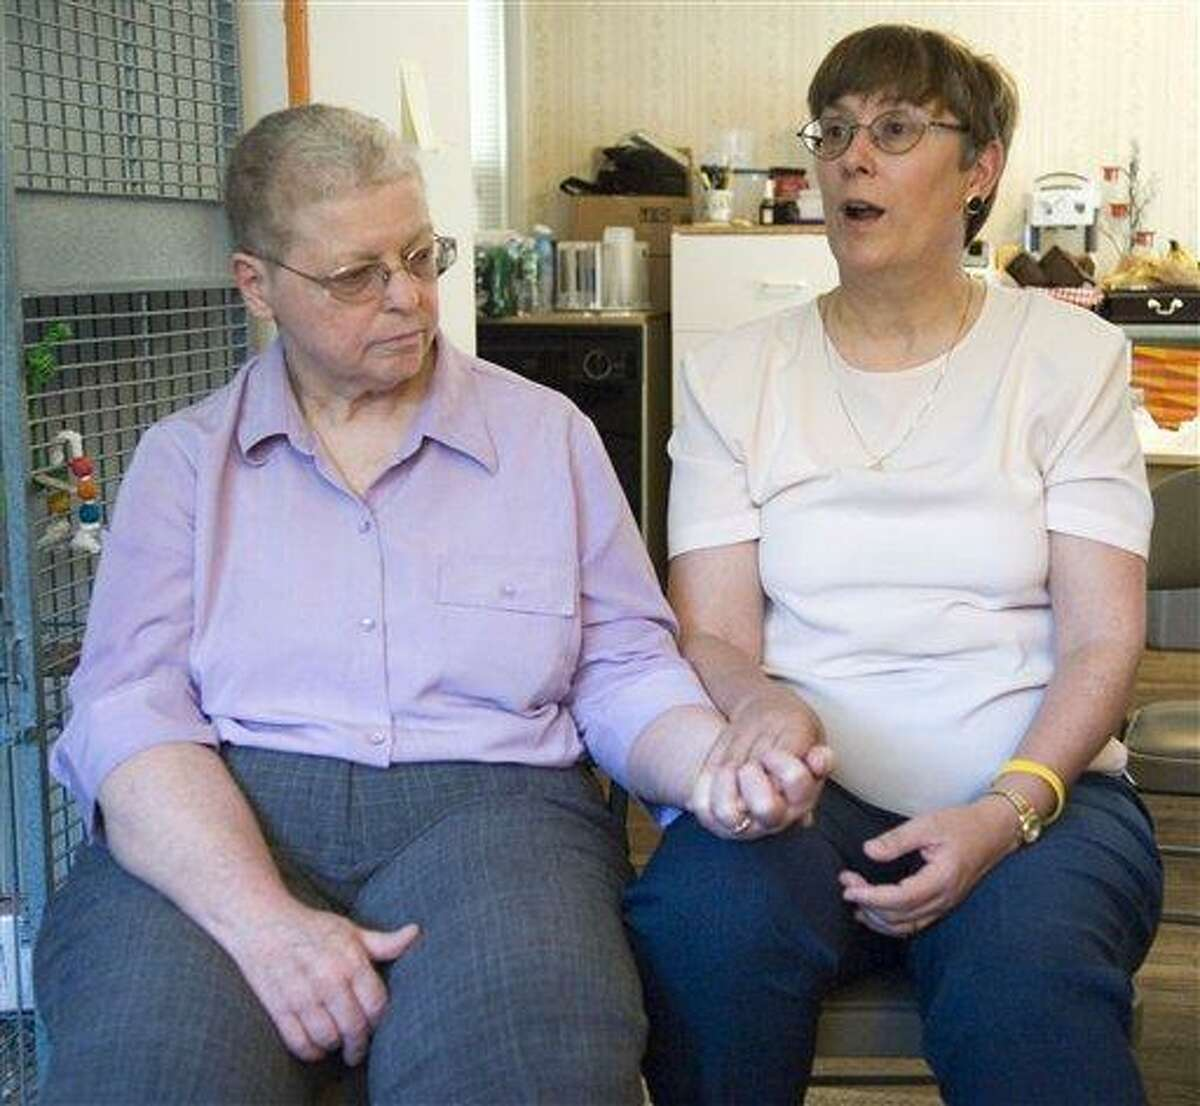 FILE - In this July 18, 2006 file photo, Margaret Mueller, left, and Charlotte Stacey hold hands during a news conference at their home in Norwalk, Conn. Mueller and Stacey sued two doctors in 2006, accusing them of treating Mueller for ovarian cancer when she actually had cancer of the appendix. They said Mueller underwent years of devastating chemotherapy treatments while the real cancer spread. A jury awarded $2.45 million to Mueller's estate Friday, July 2, 2010, to settle the malpractice case, (AP Photo/Douglas Healey, File)